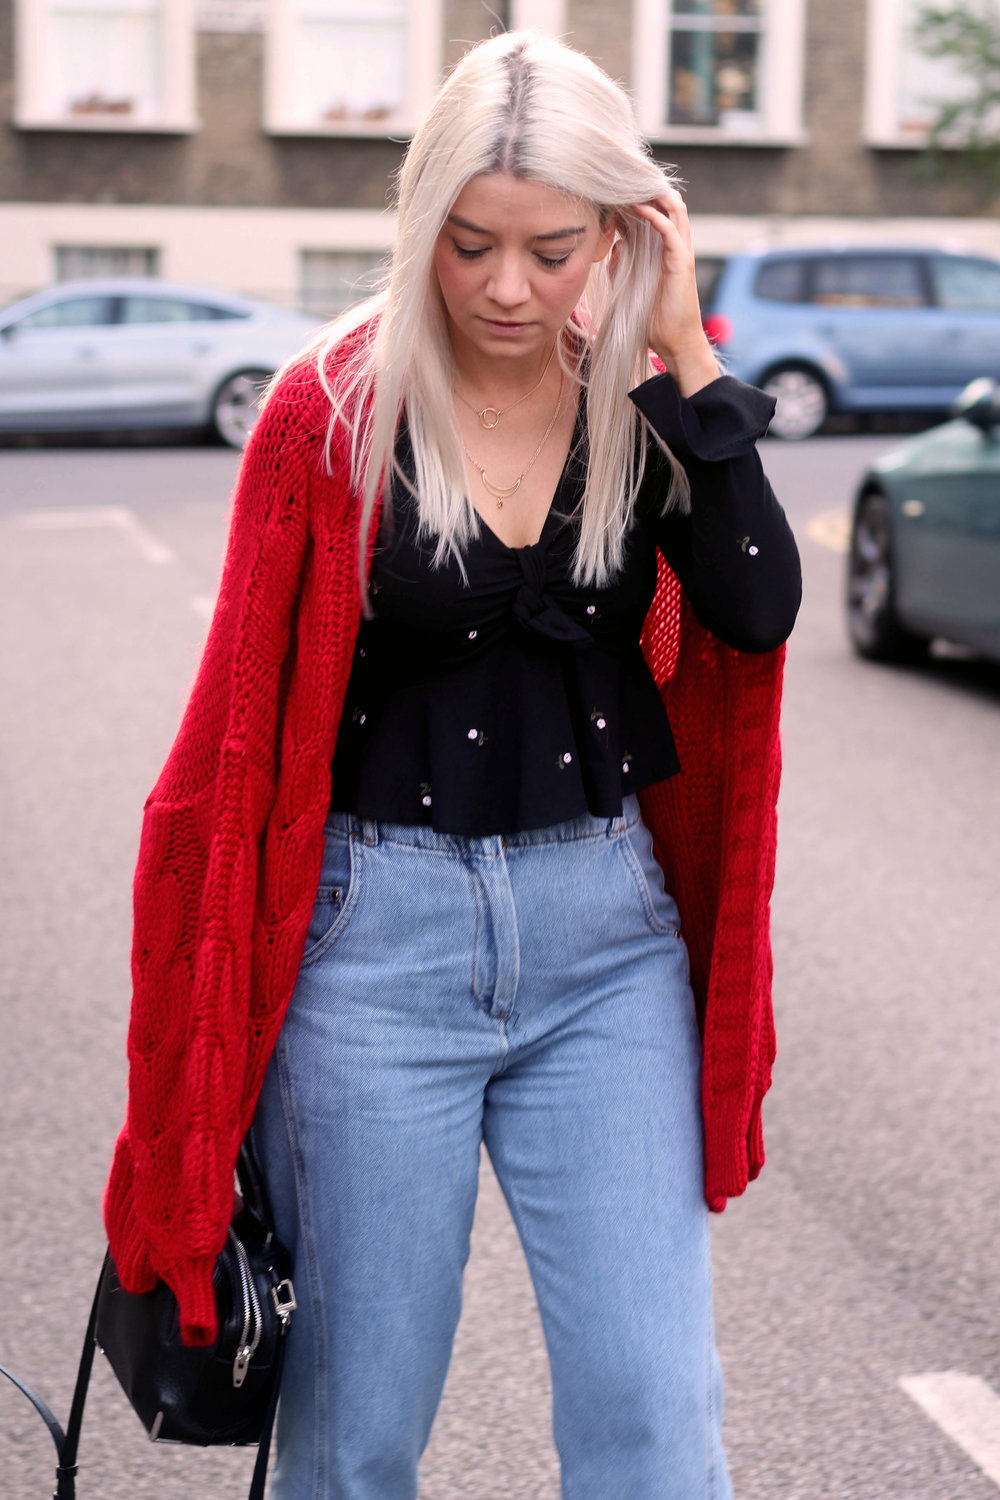 topshop jeans, next red cardigan, tie front ruffle top, ego boots, northern magpie, joey taylor 5